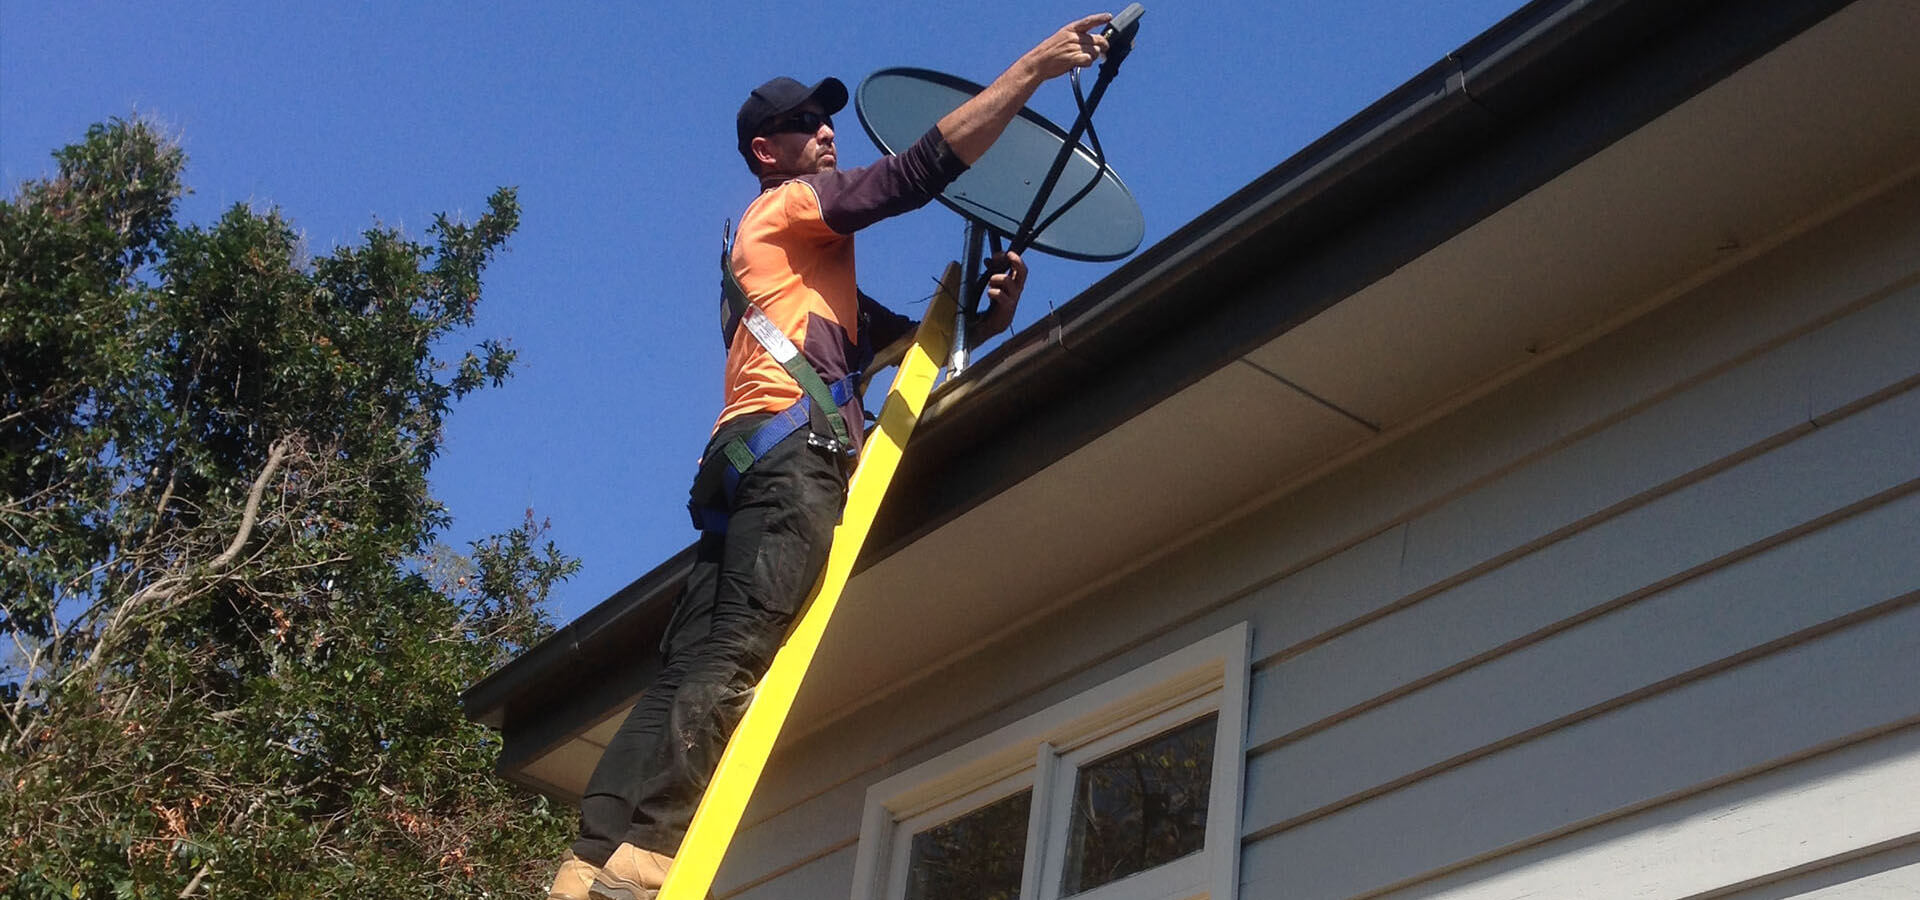 Installer using the Branach fibreglass  CorrosionMaster Extension Ladder to climb on a roof.